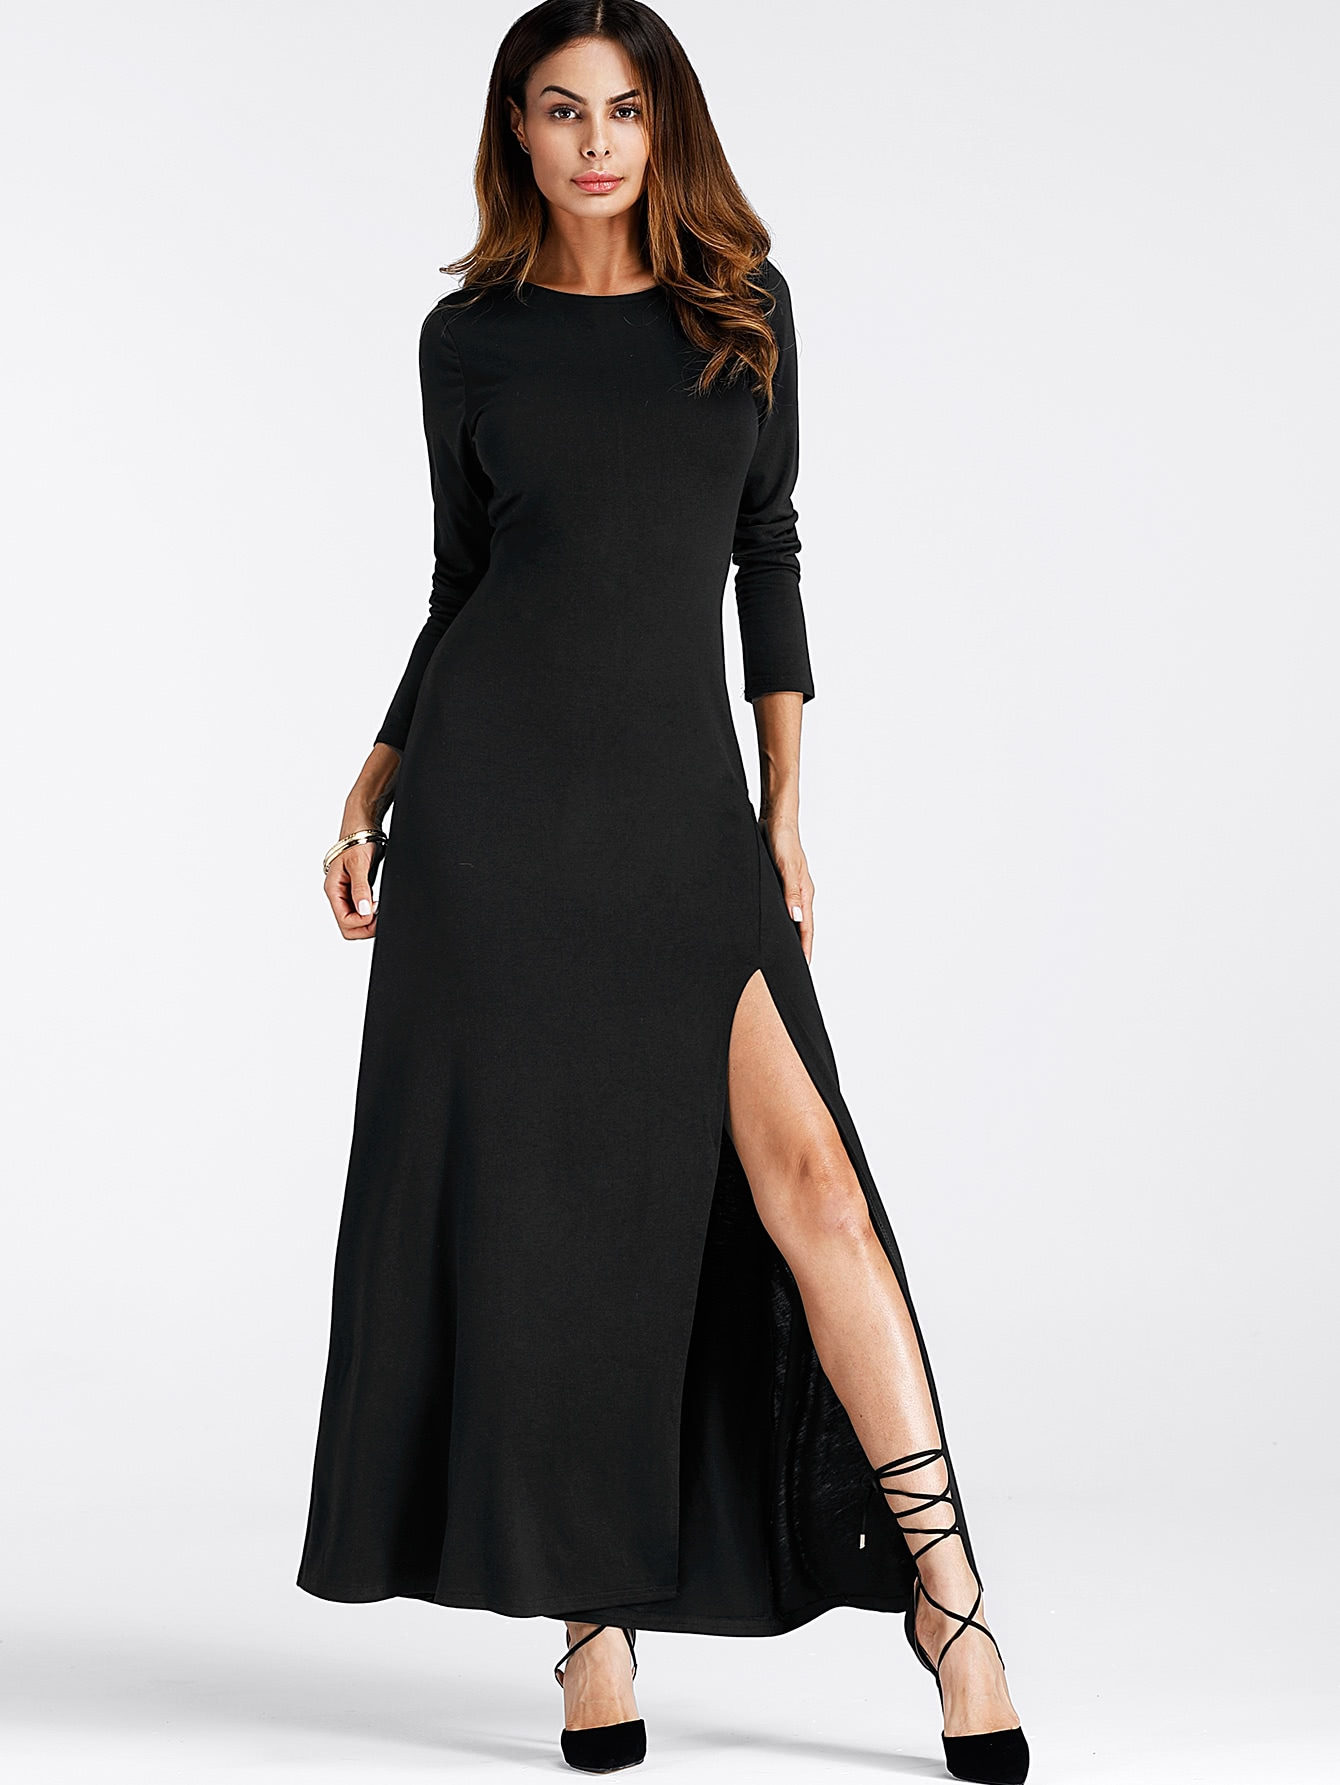 EMILY - Maxi Dresses Gowns Work Office Modest Church Funeral Formal. A stunning long sleeve designer maxi dress that features a wrap style chest and an asymmetric cut bottom hem that gives way to a split and ruffled drape/5(K).